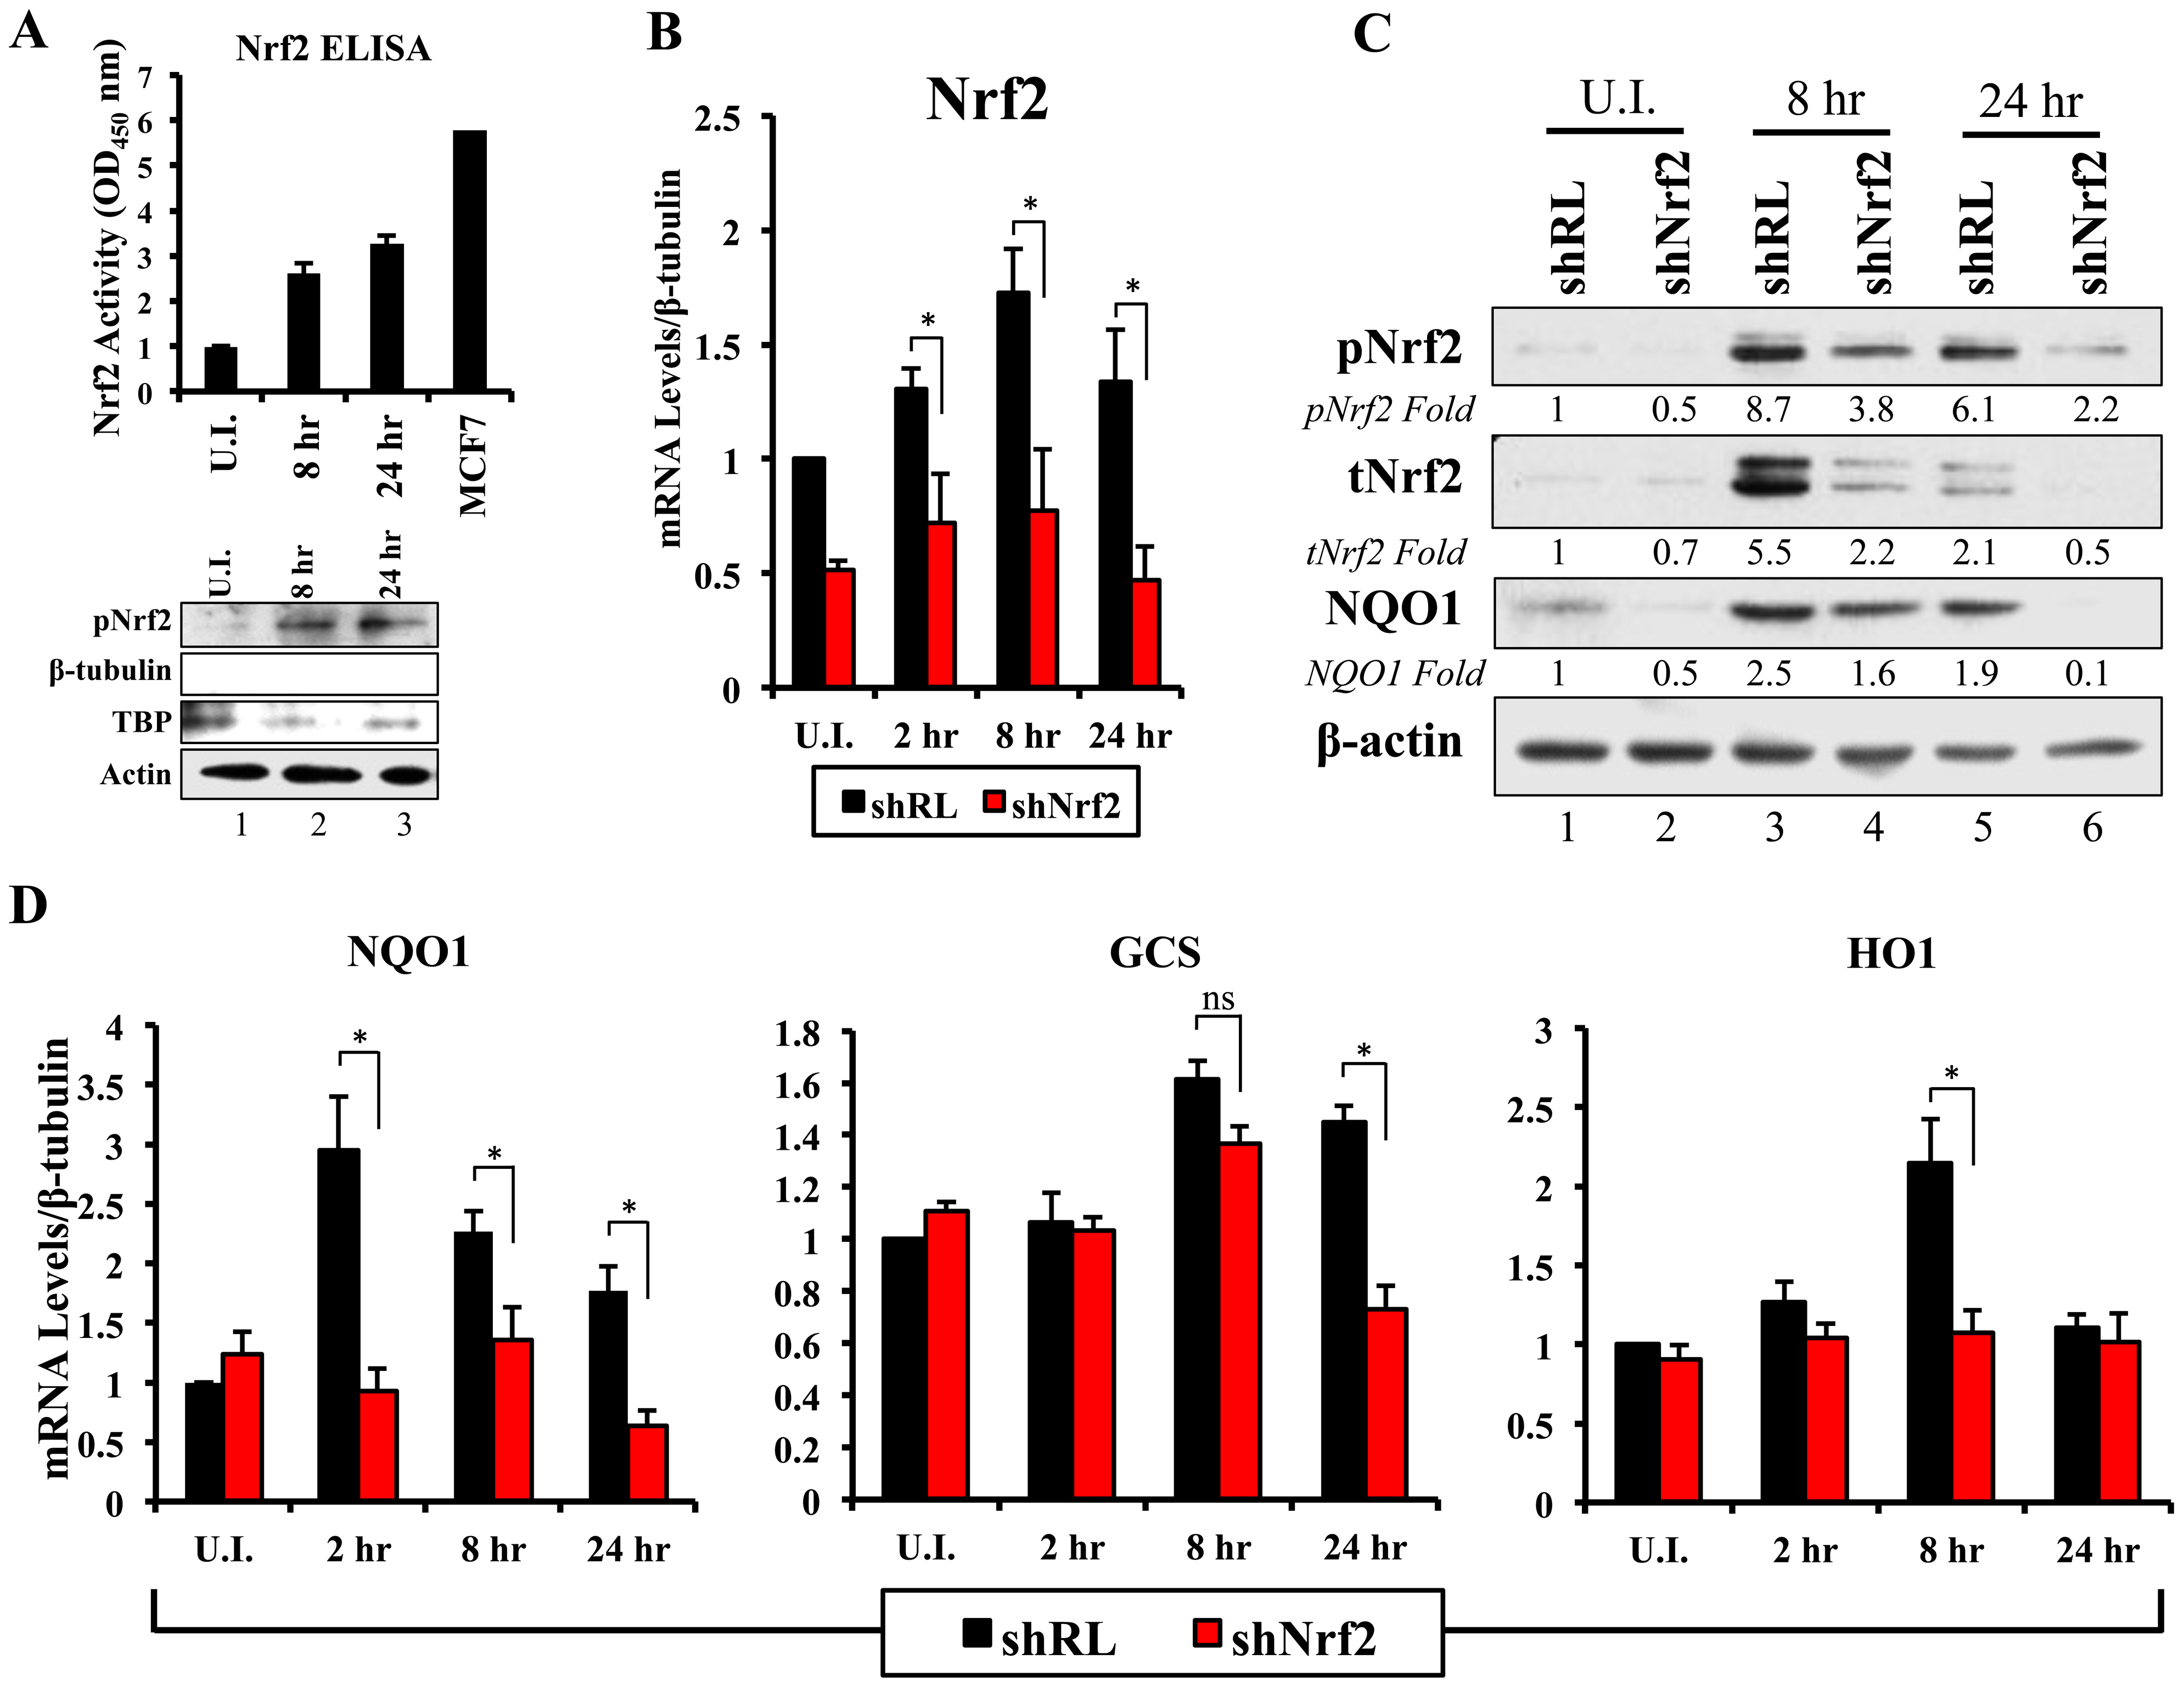 Lentiviral knockdown of Nrf2 and the effects on target genes during KSHV infection.